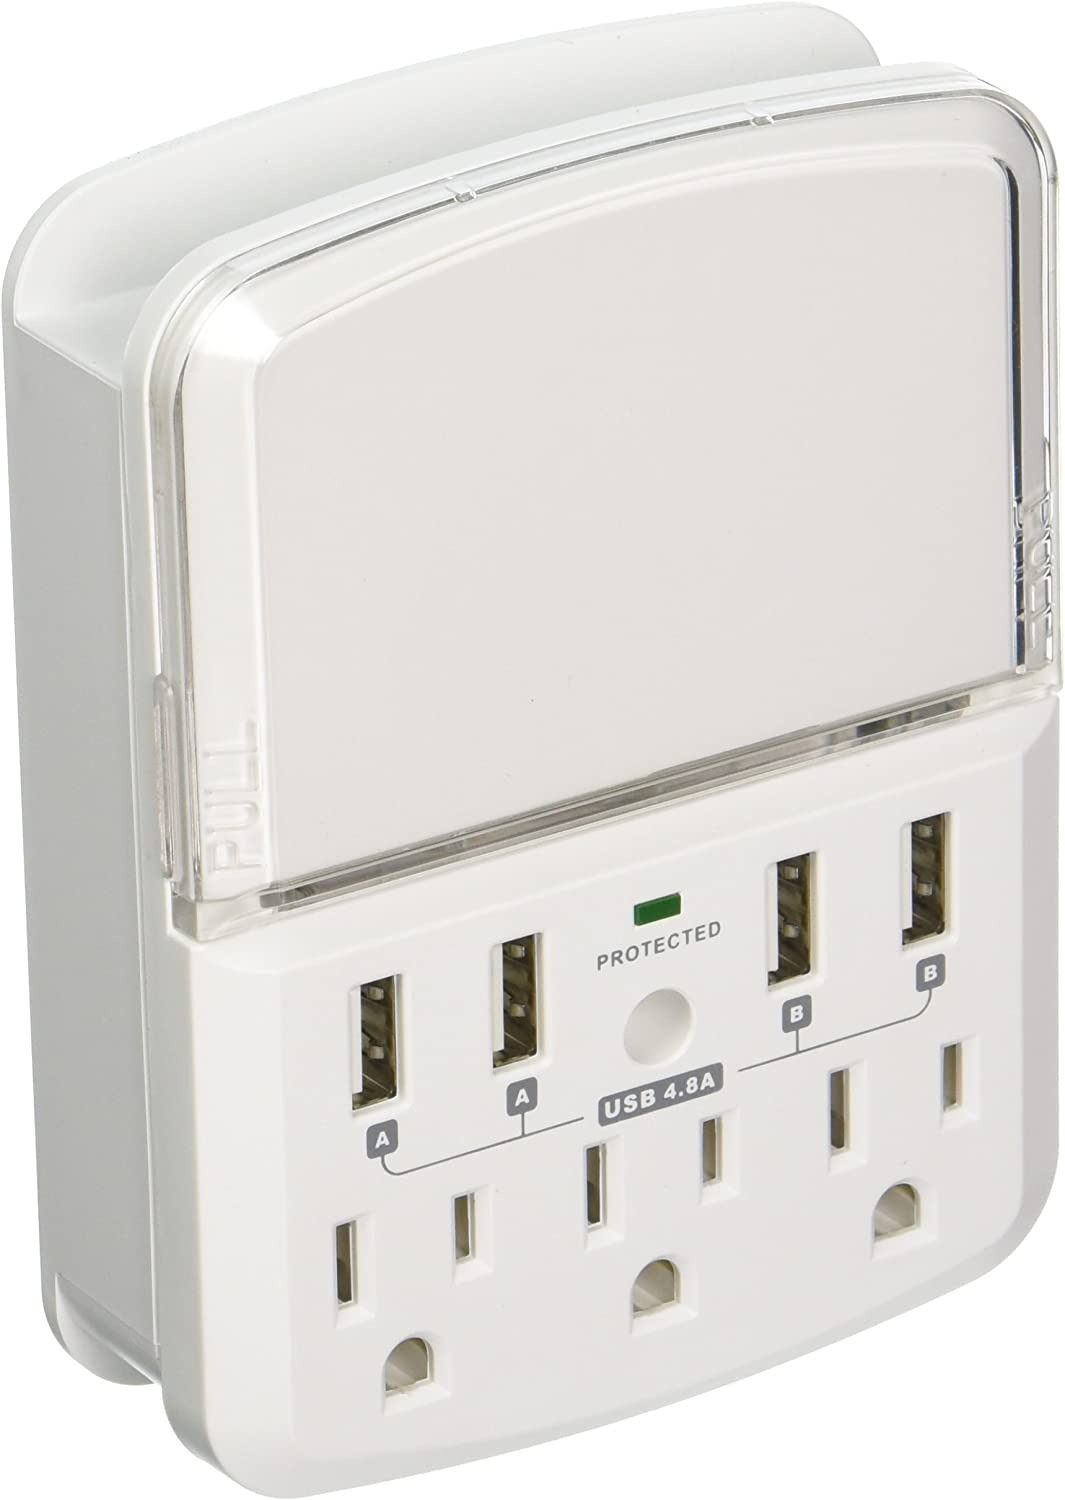 Rnd Wall Power Station Includes 3 AC Plugs and 4 USB Ports (4.8A Total) with Surge Protection and Slide-Out Holder for iPhone, Ipad, Samsung Galaxy, LG, HTC, Moto and All USB Compatible Devices